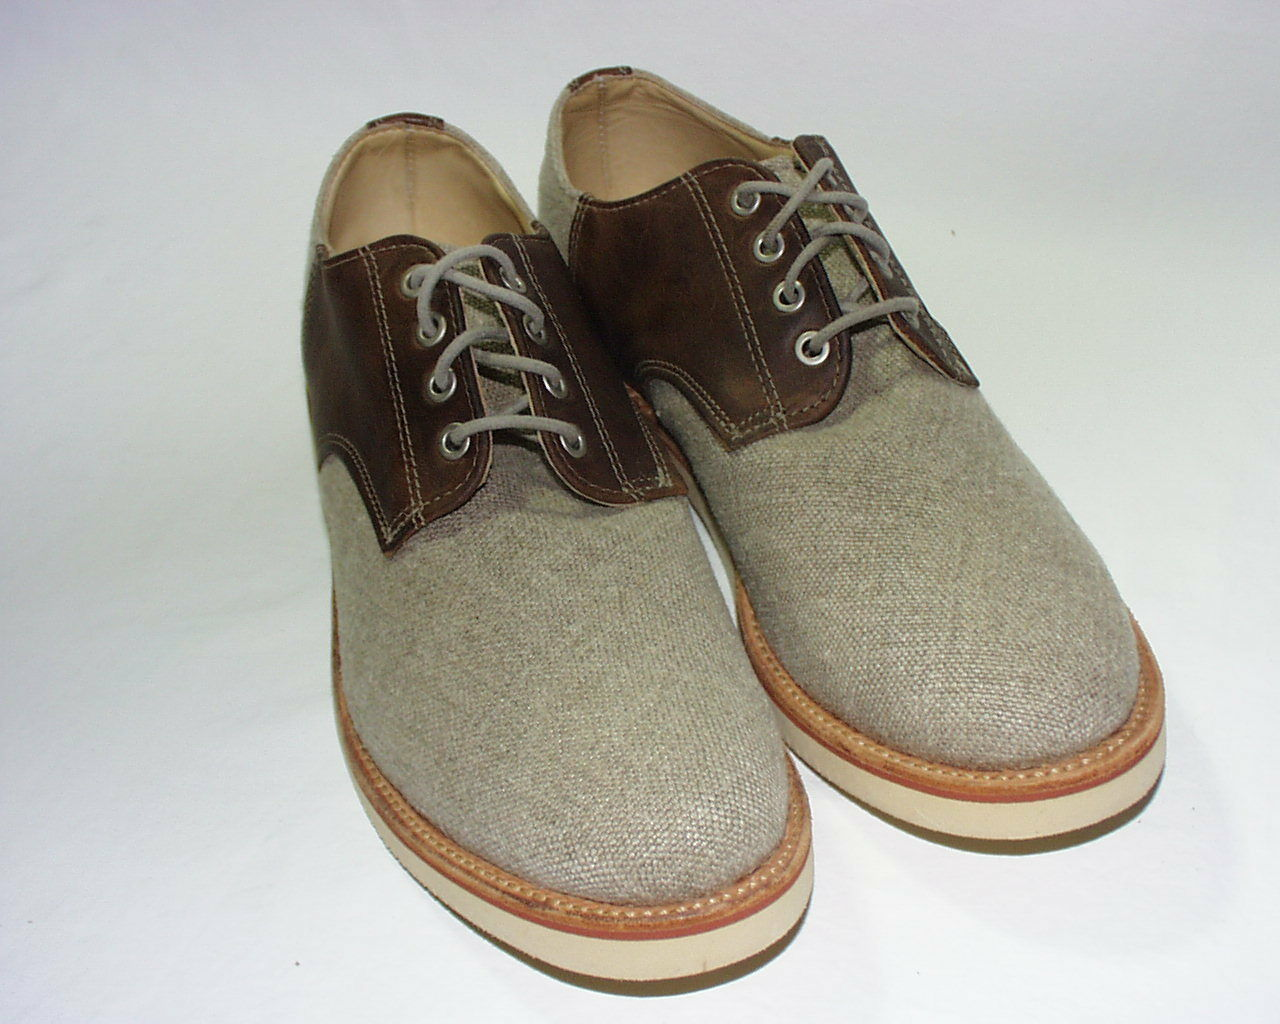 disegni esclusivi Walk-Over Joseph Joseph Joseph Saddle Oxford,Linen Leather Upper,Slate Natural Plainsman,9,New  in vendita